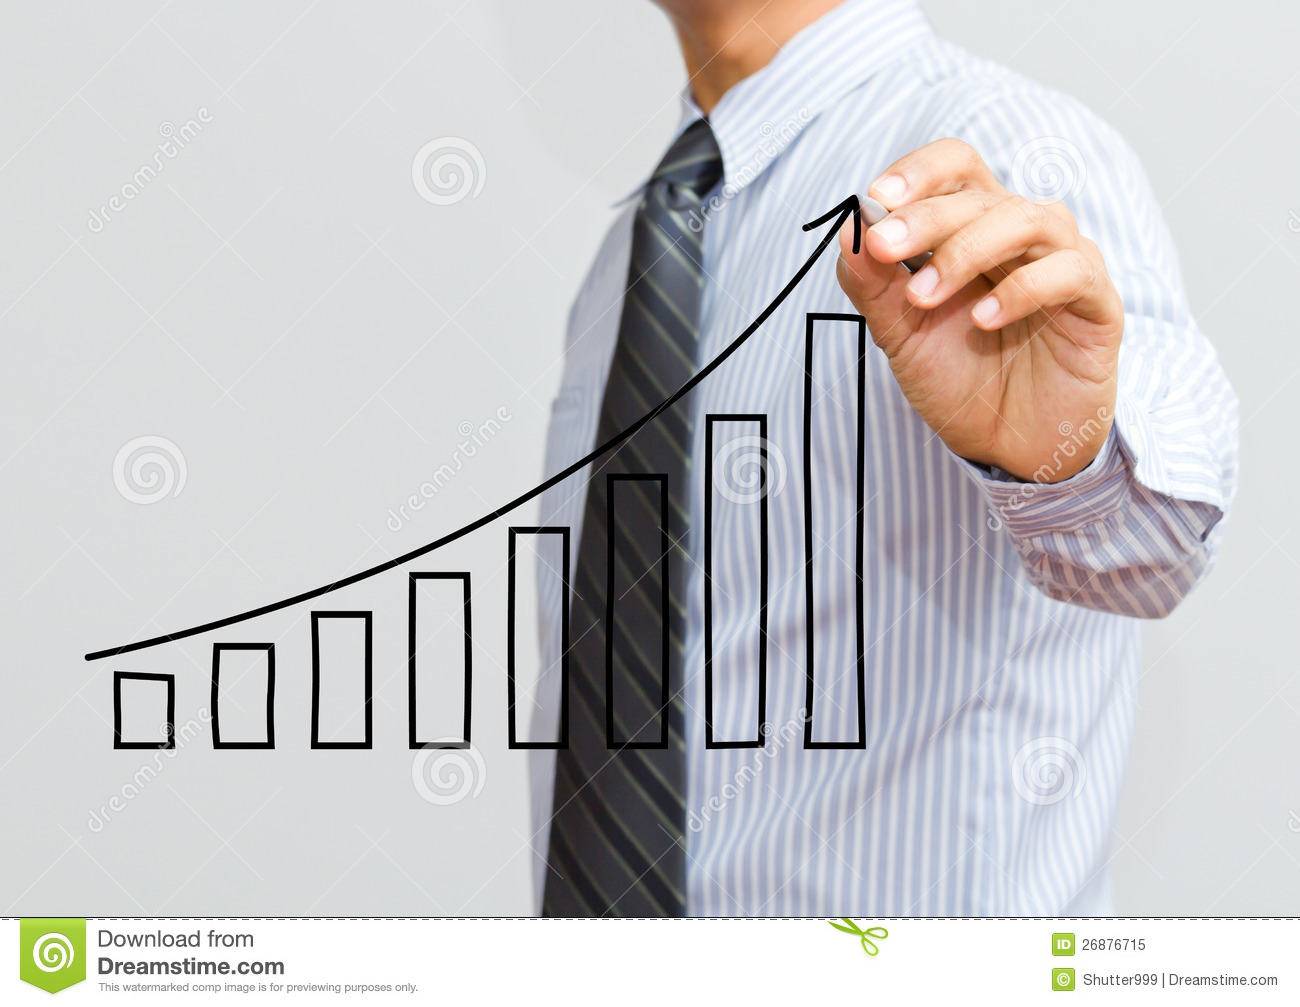 business-man-drawing-growing-graph-26876715.jpg